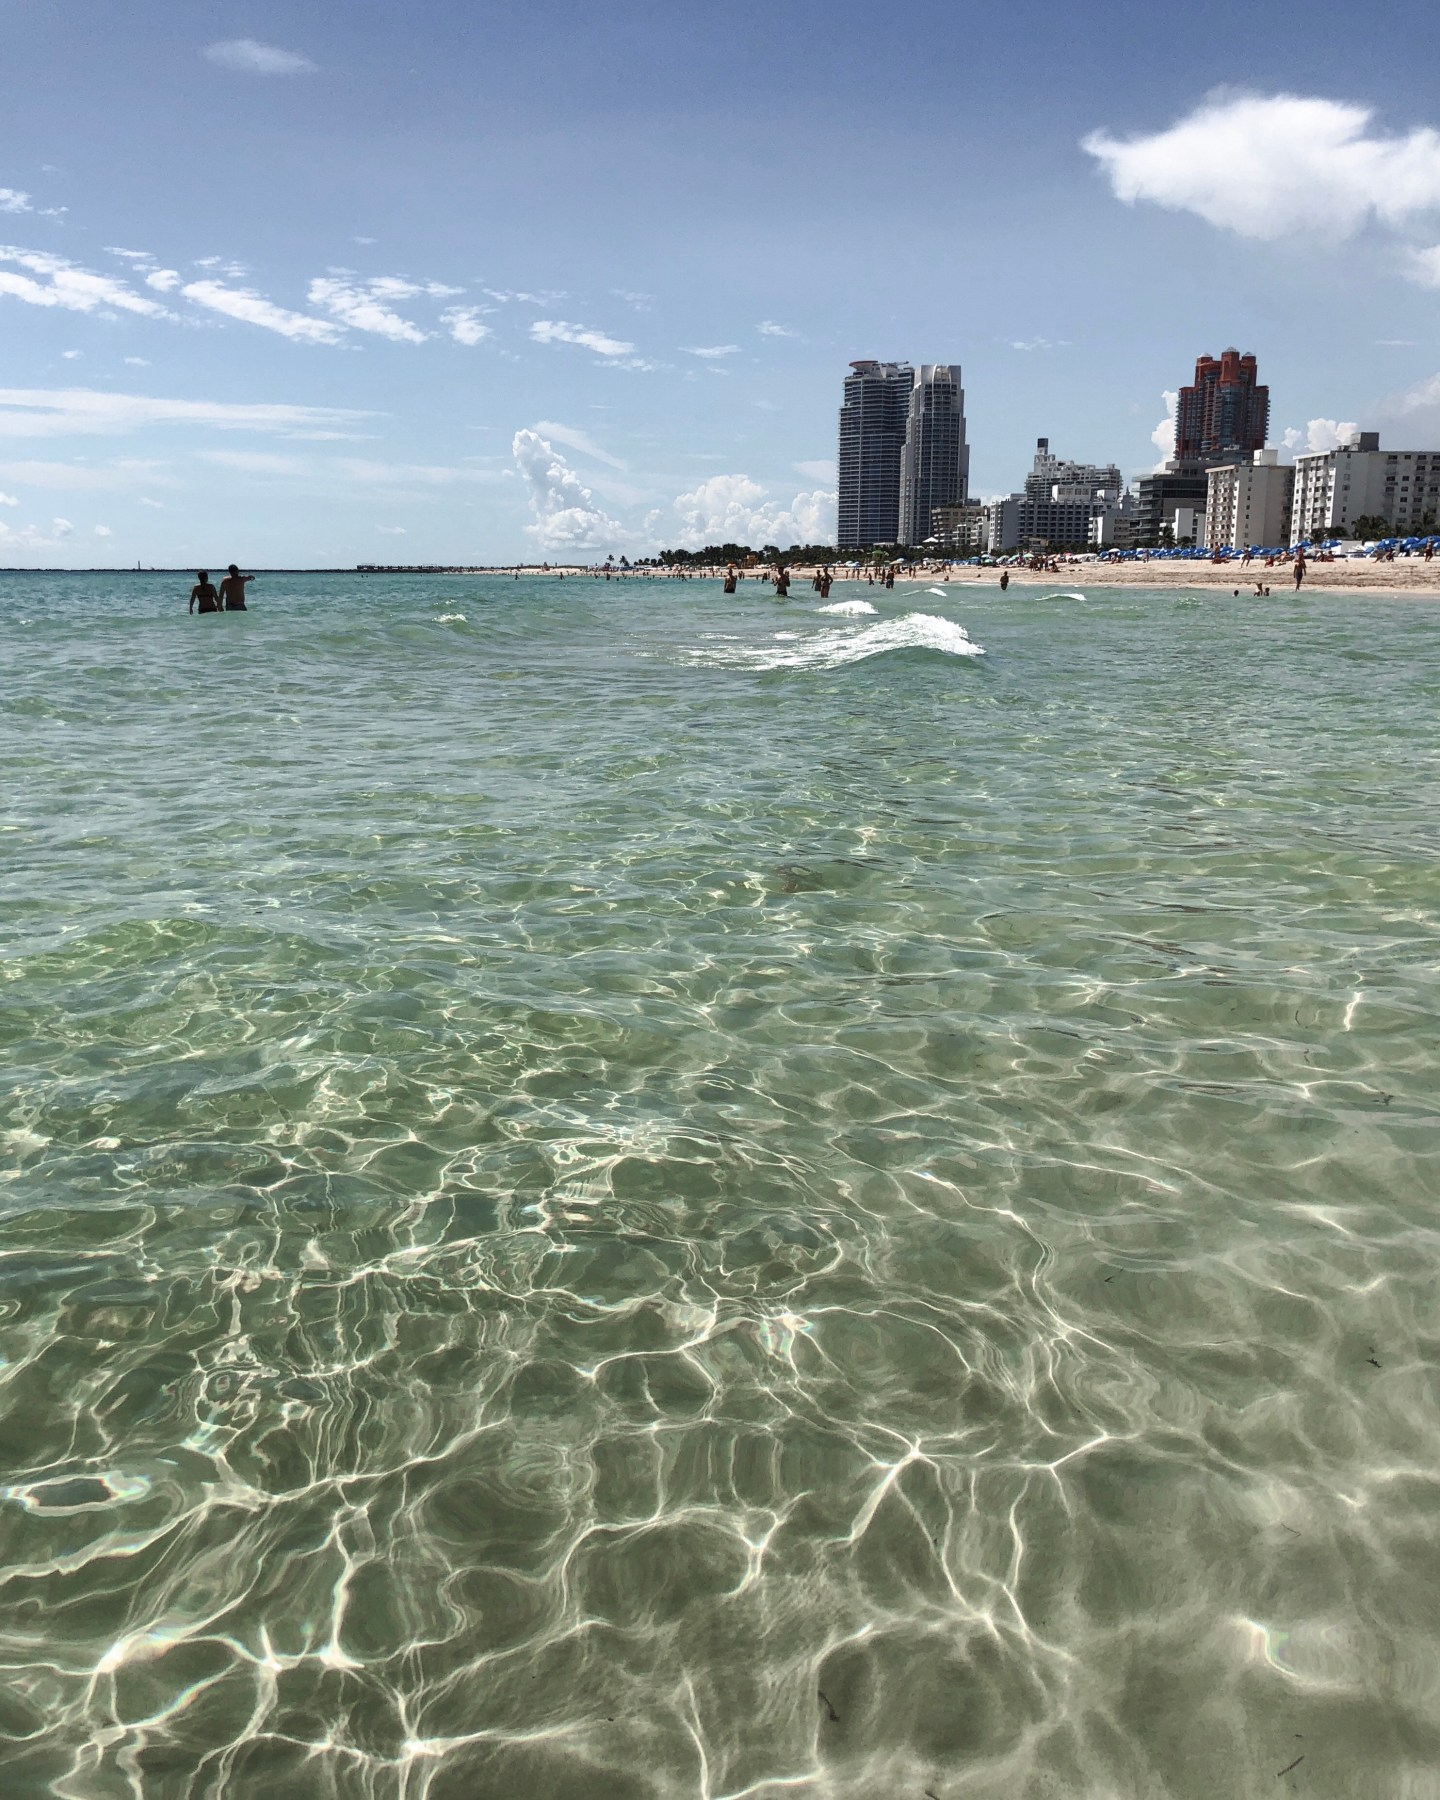 35 Photos That Will Make You Want to Visit Miami Beach